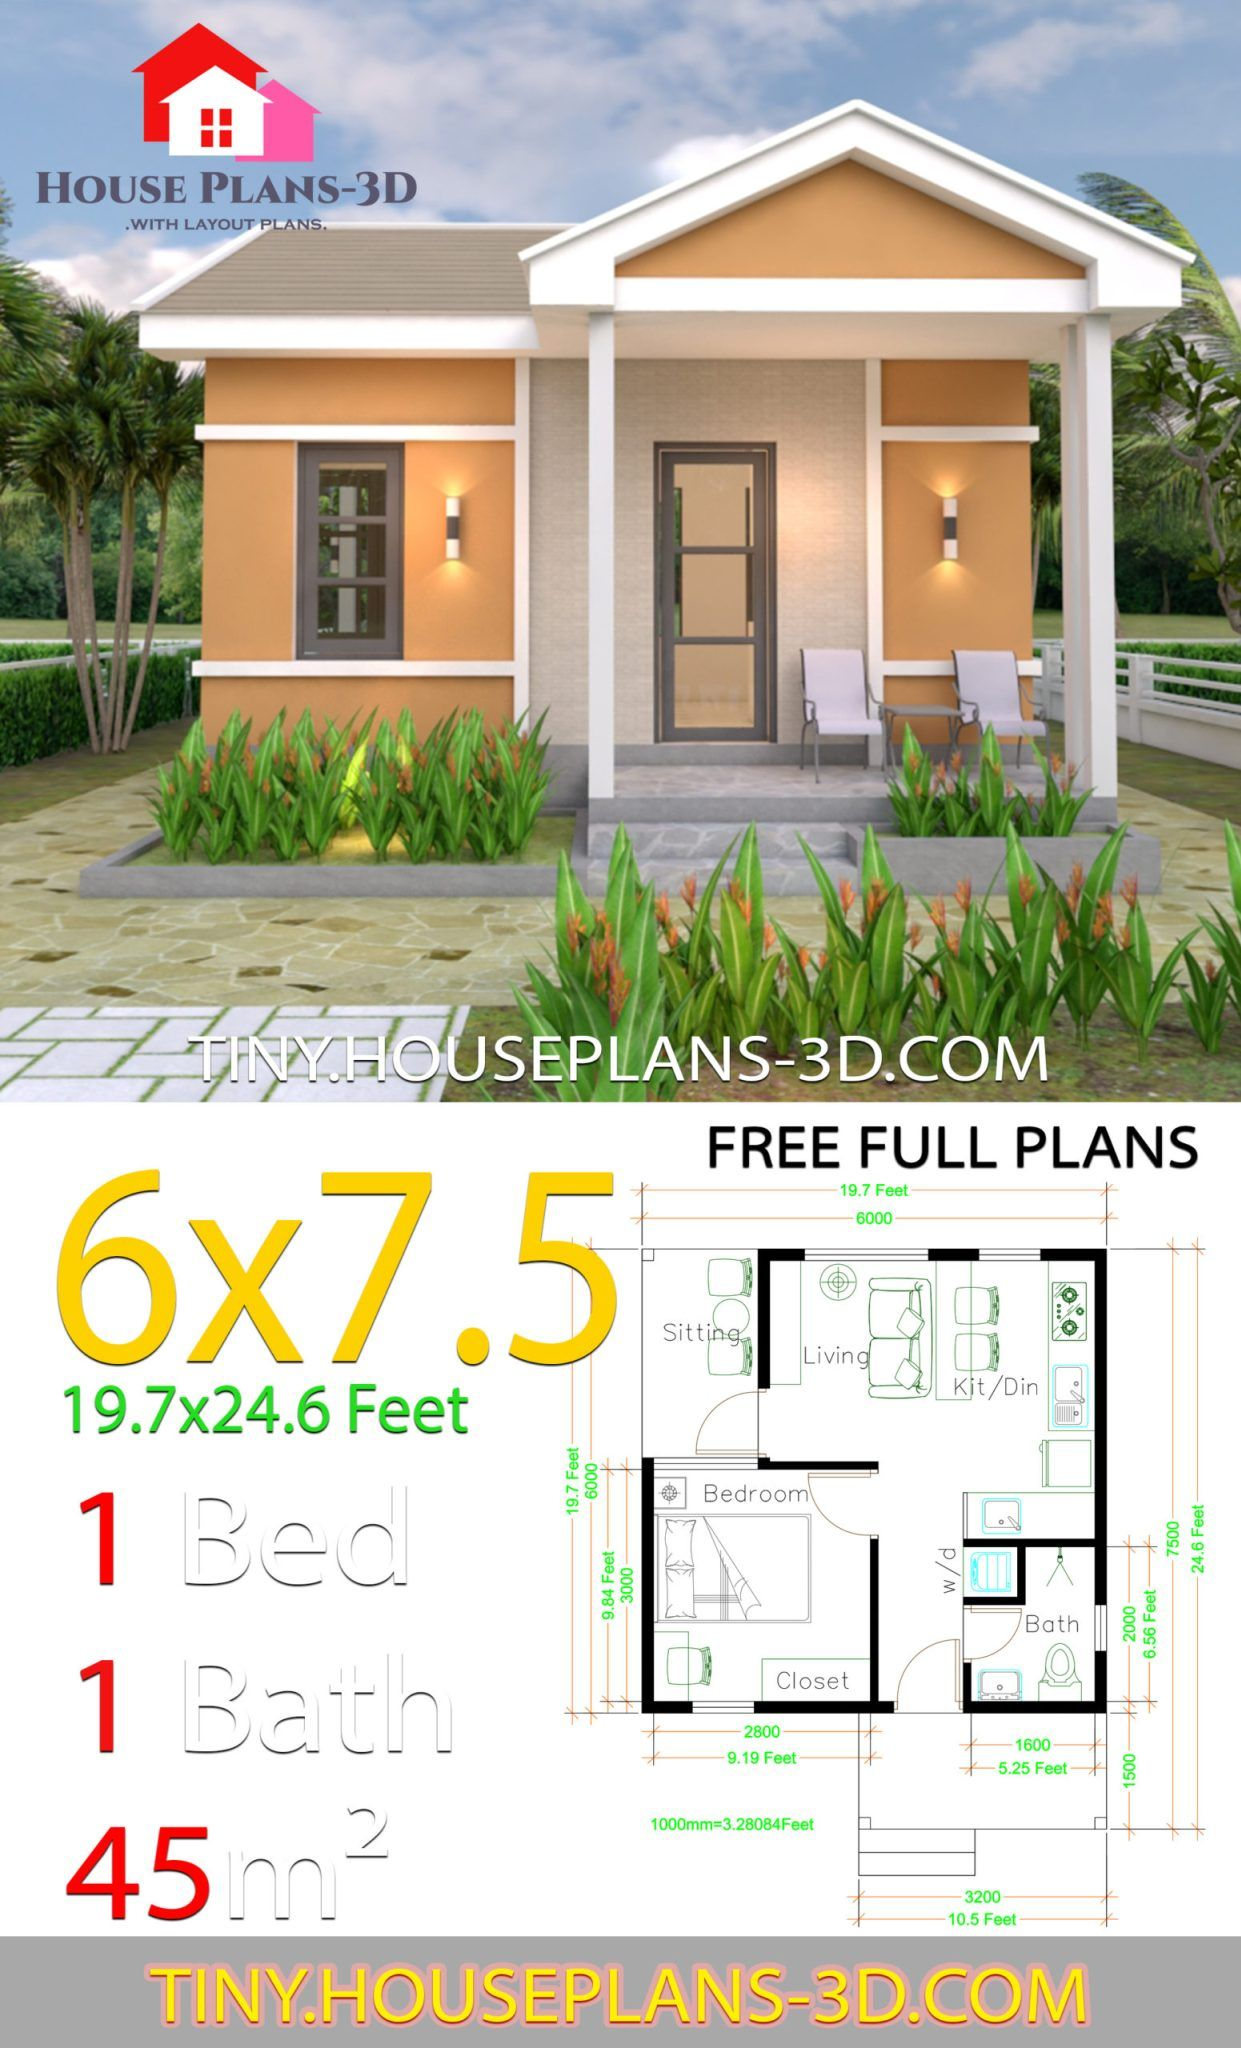 One Bedroom House Plans 6x7.5 with Gable Roof in 2020 ...